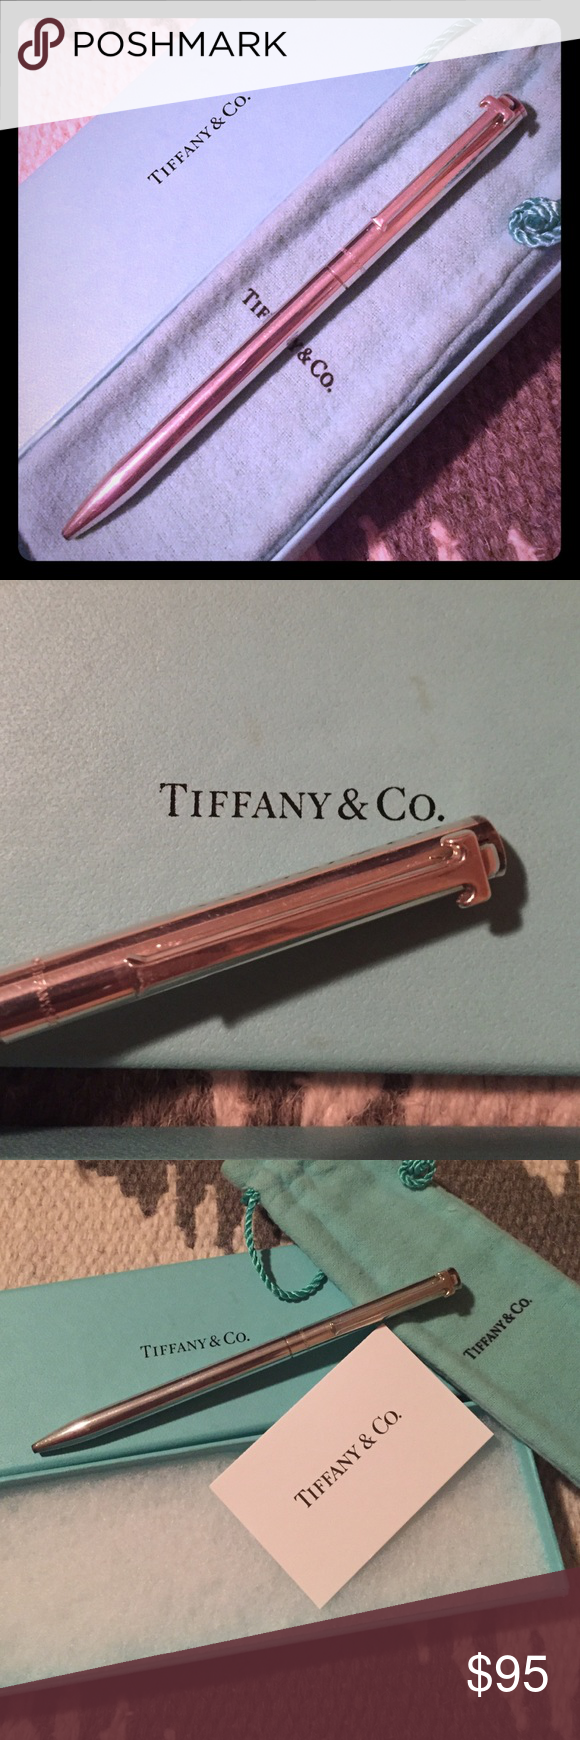 Authentic Tiffany & Co .925 Sterling Silver Pen Authentic Tiffany & Co T clip pen . In .925 sterling silver . With ink working well . With Tiffany & Co engraved on the pen . Loved but still shiny and pretty . Box , pouch and care card included. Tiffany & Co. Accessories